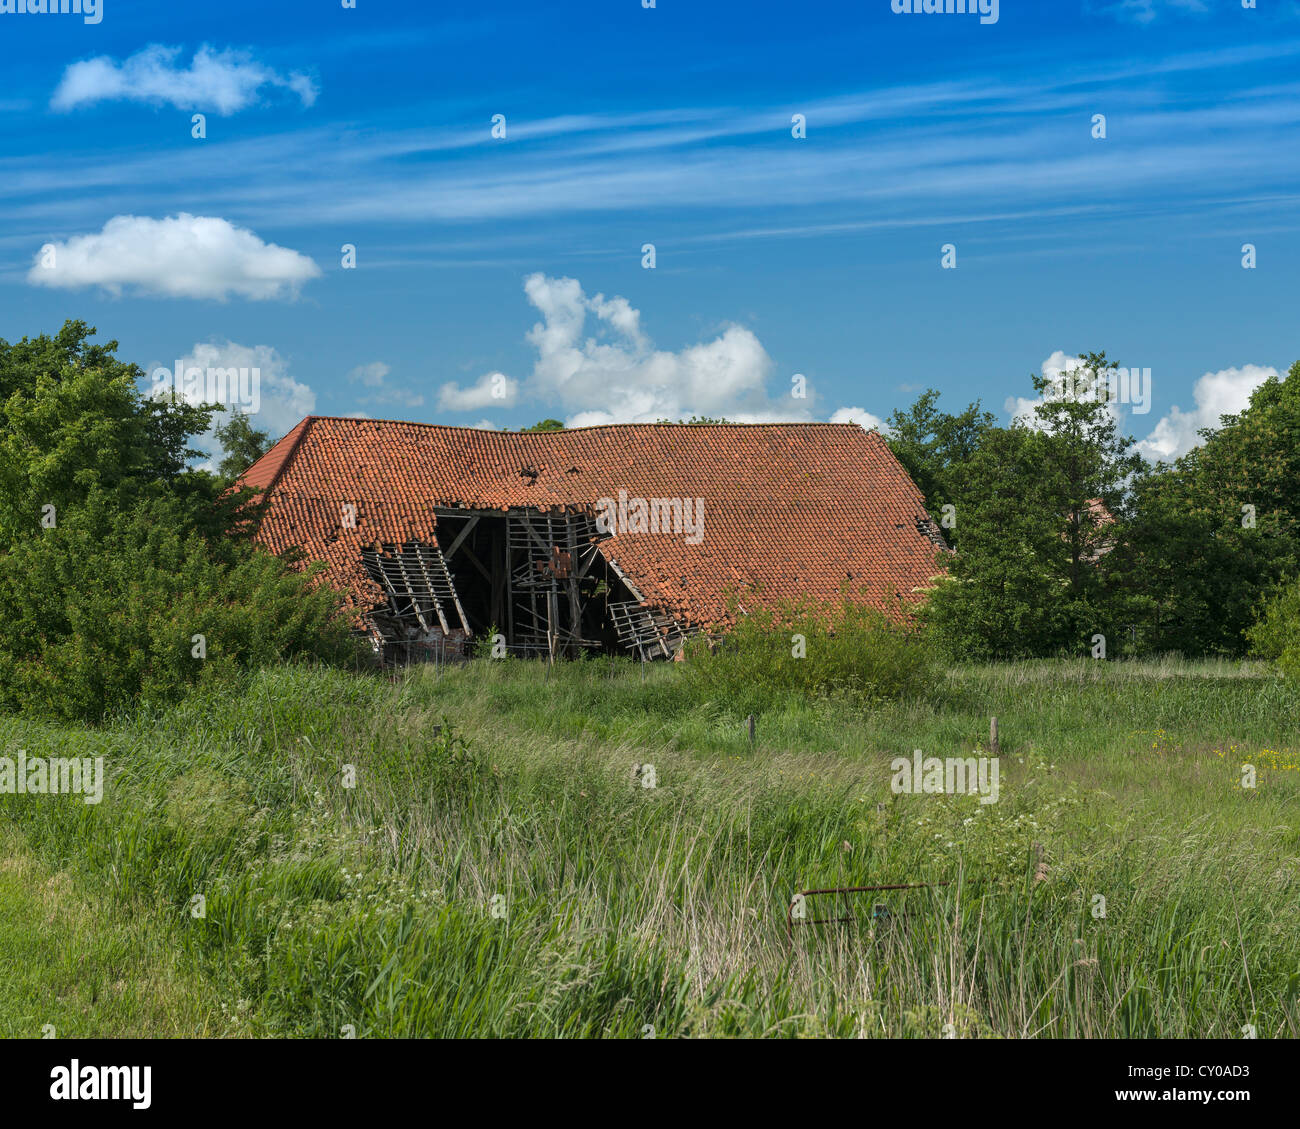 Old bard with partially collapsed roof, former Gulfhof, East Frisian building near Hinte, East Frisia, Lower Saxony - Stock Image